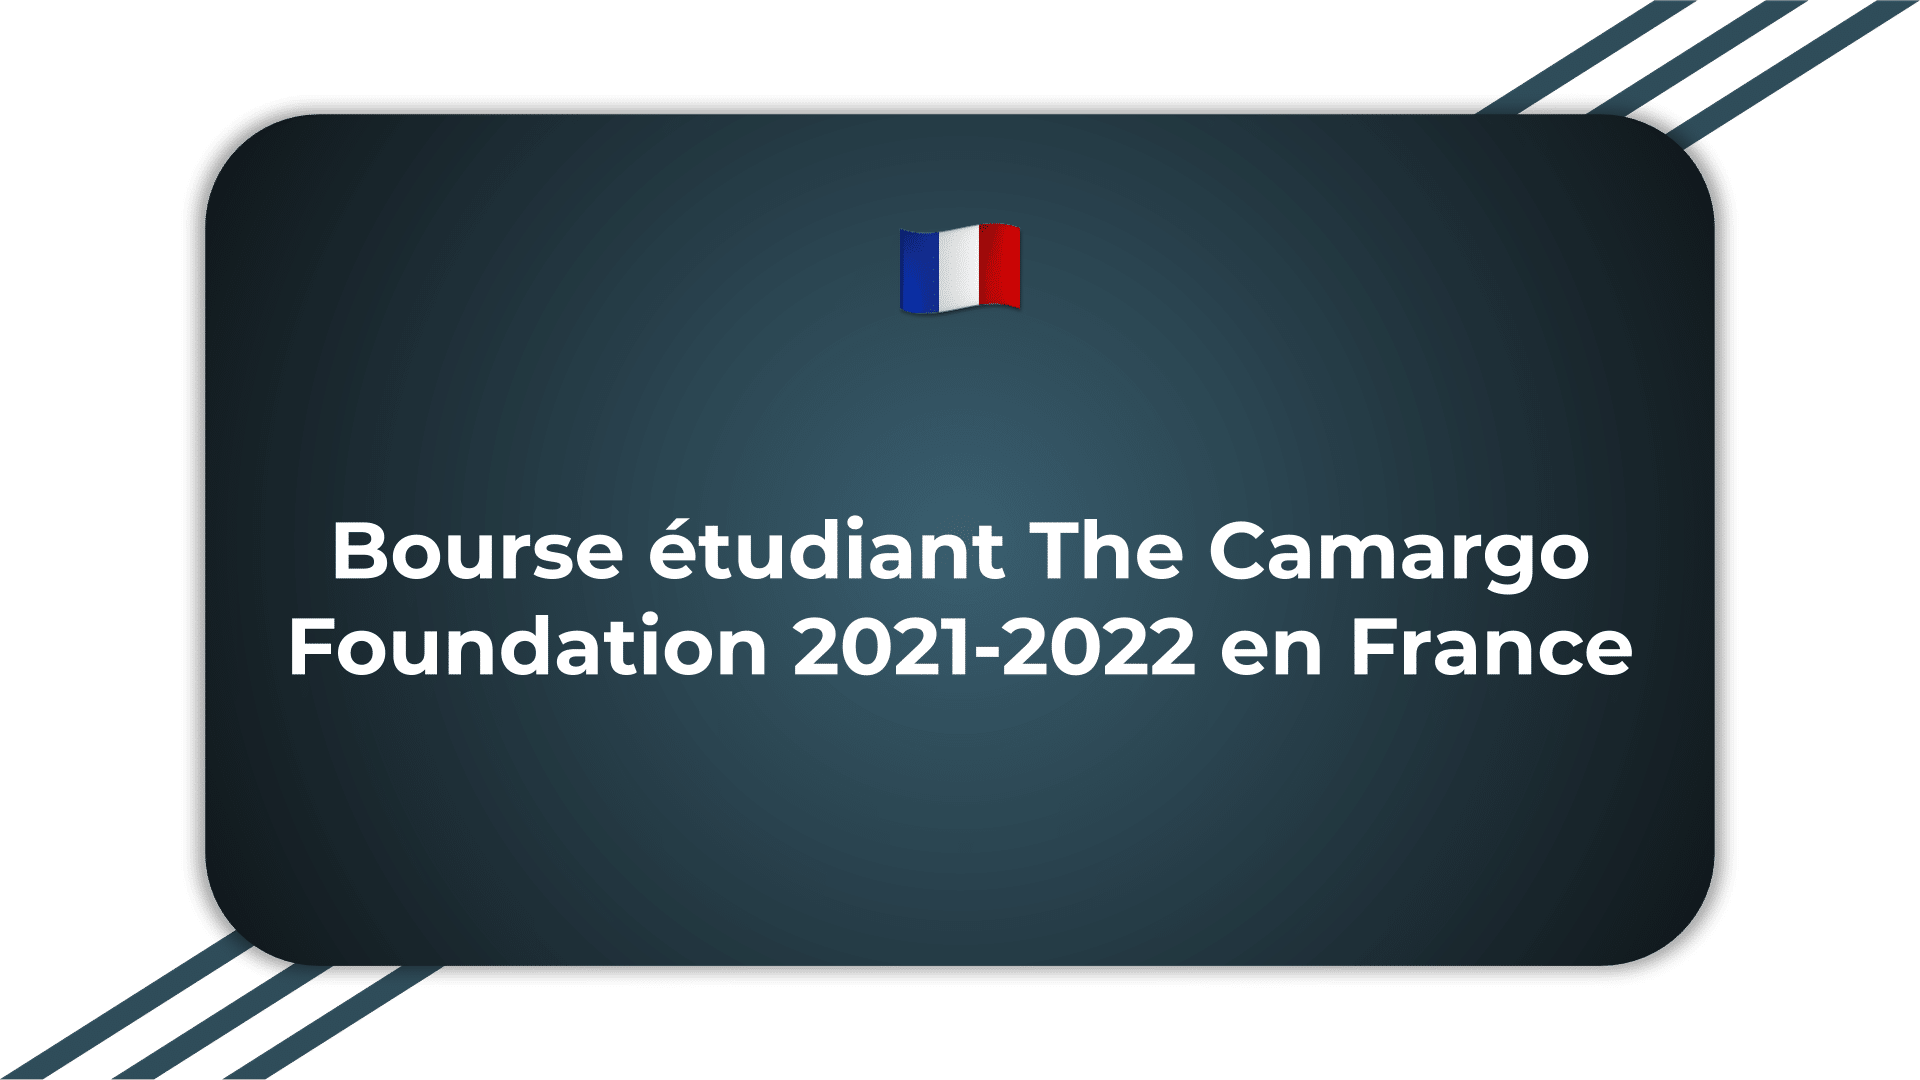 Bourse étudiant The Camargo Foundation